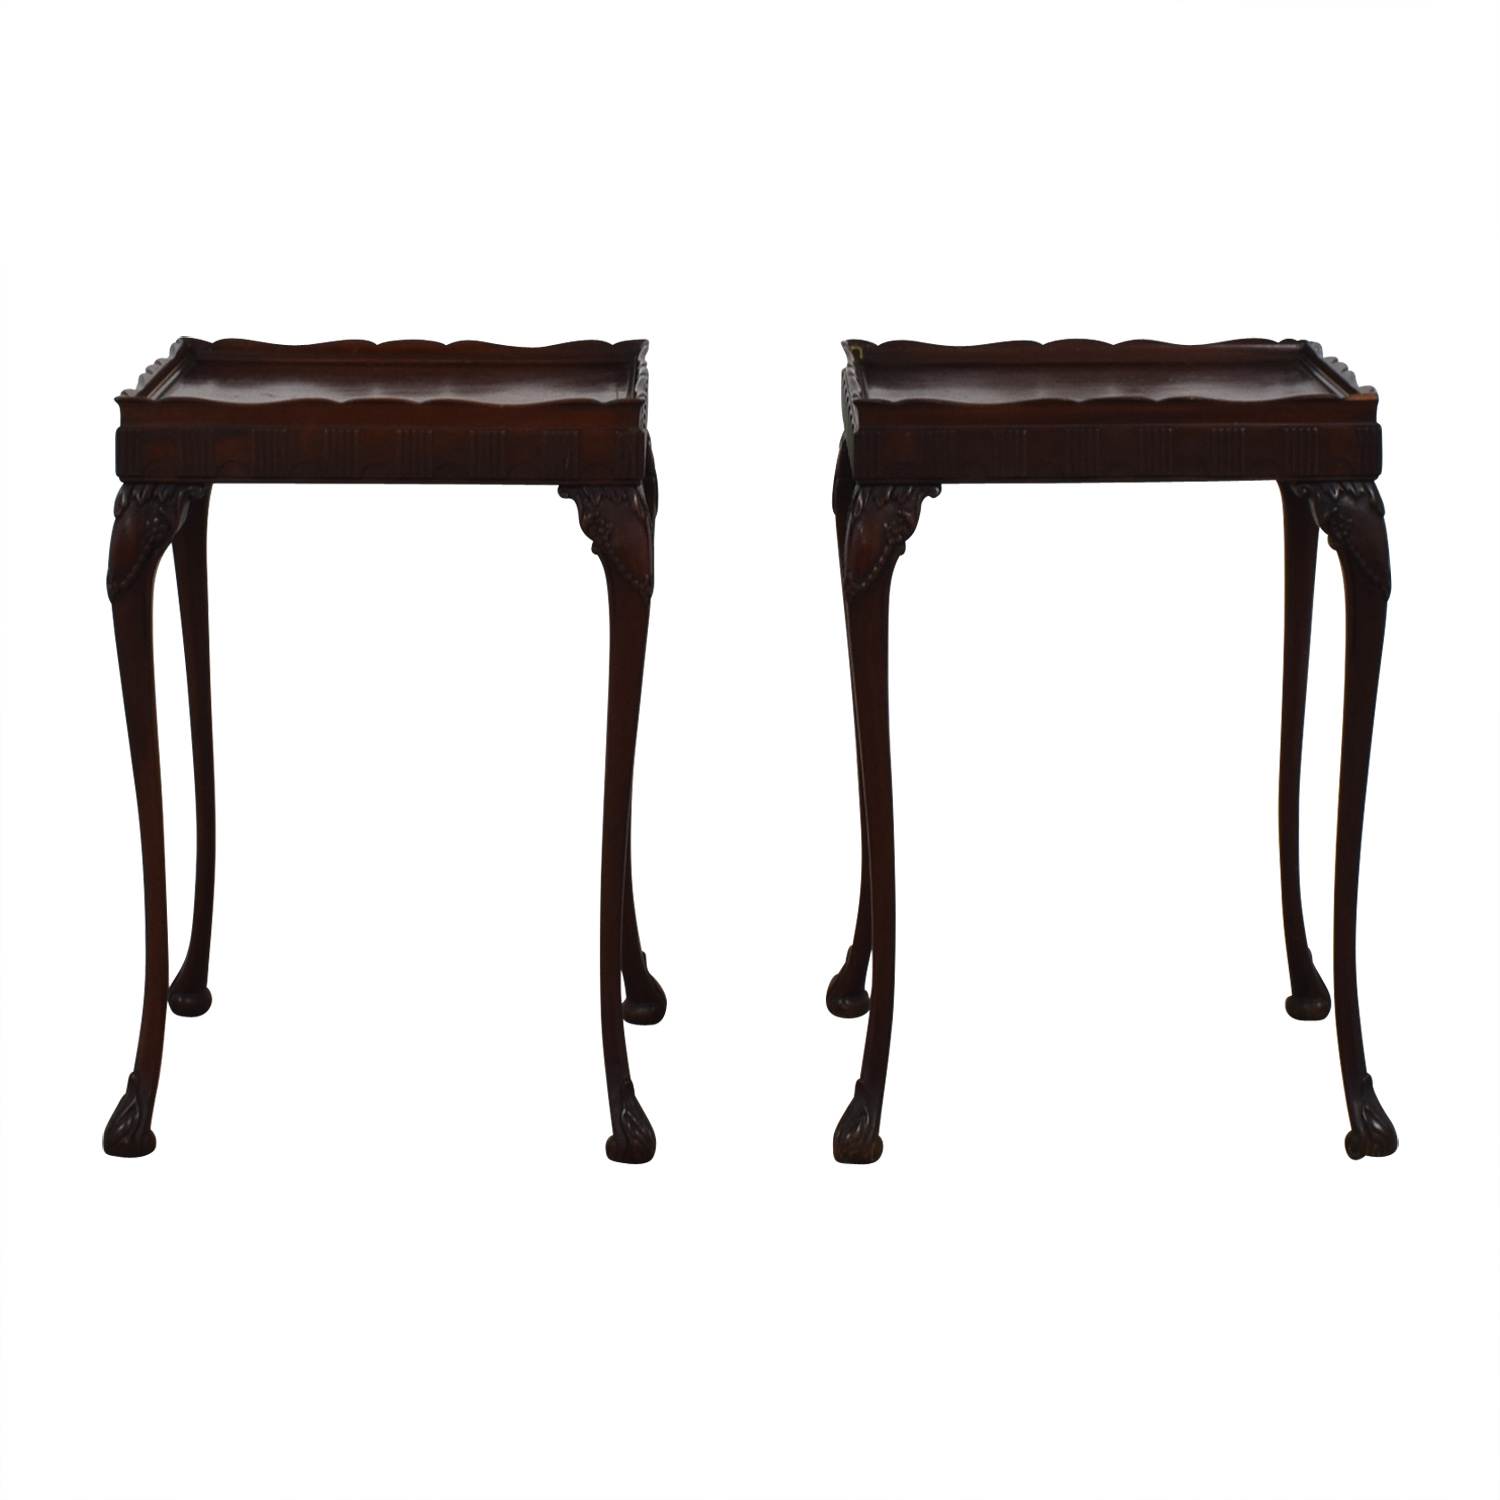 Weiman Furniture Weiman Furniture Side Tables nyc